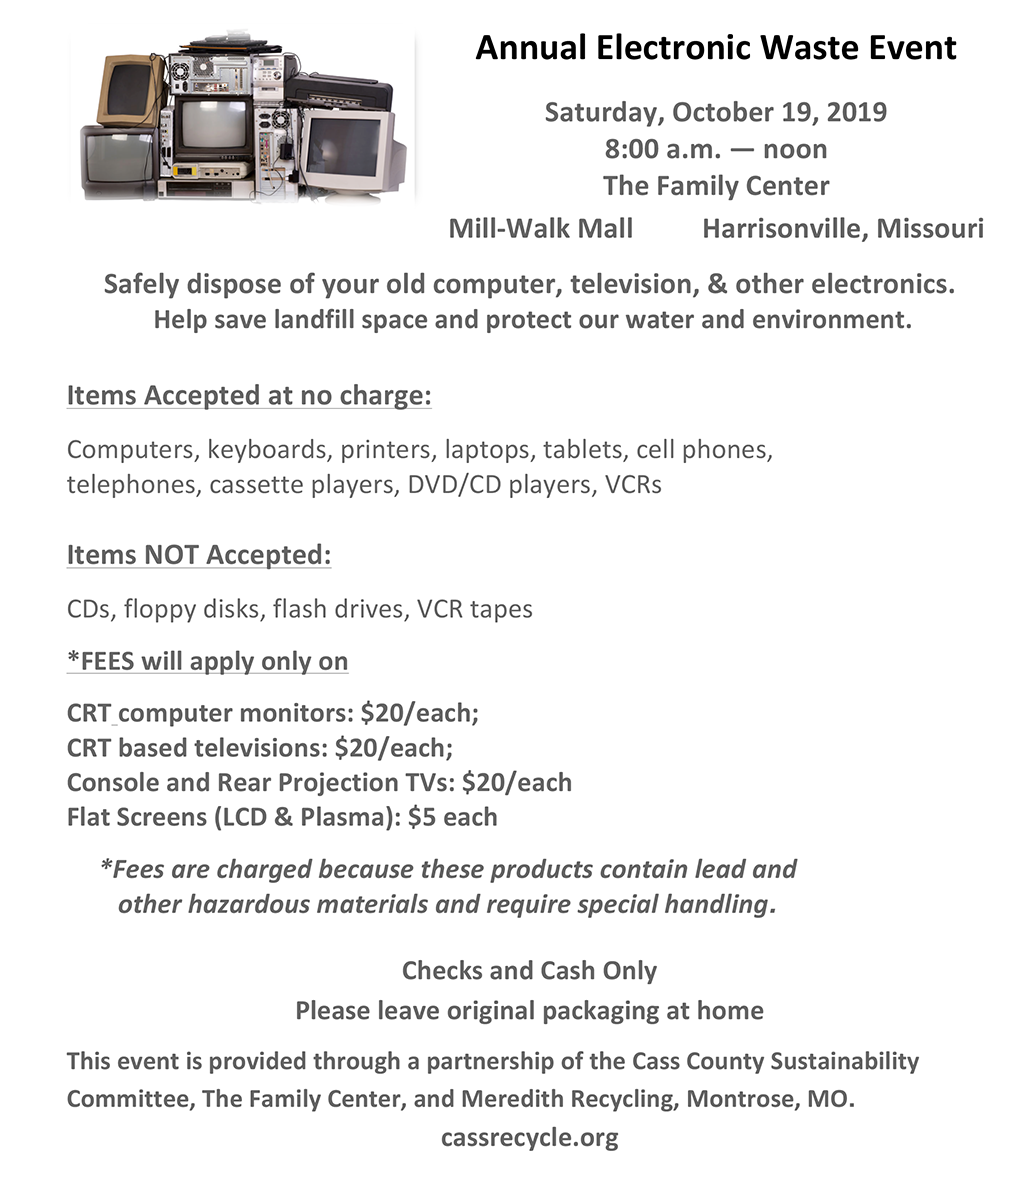 Annual Electronic Waste Event 1-1